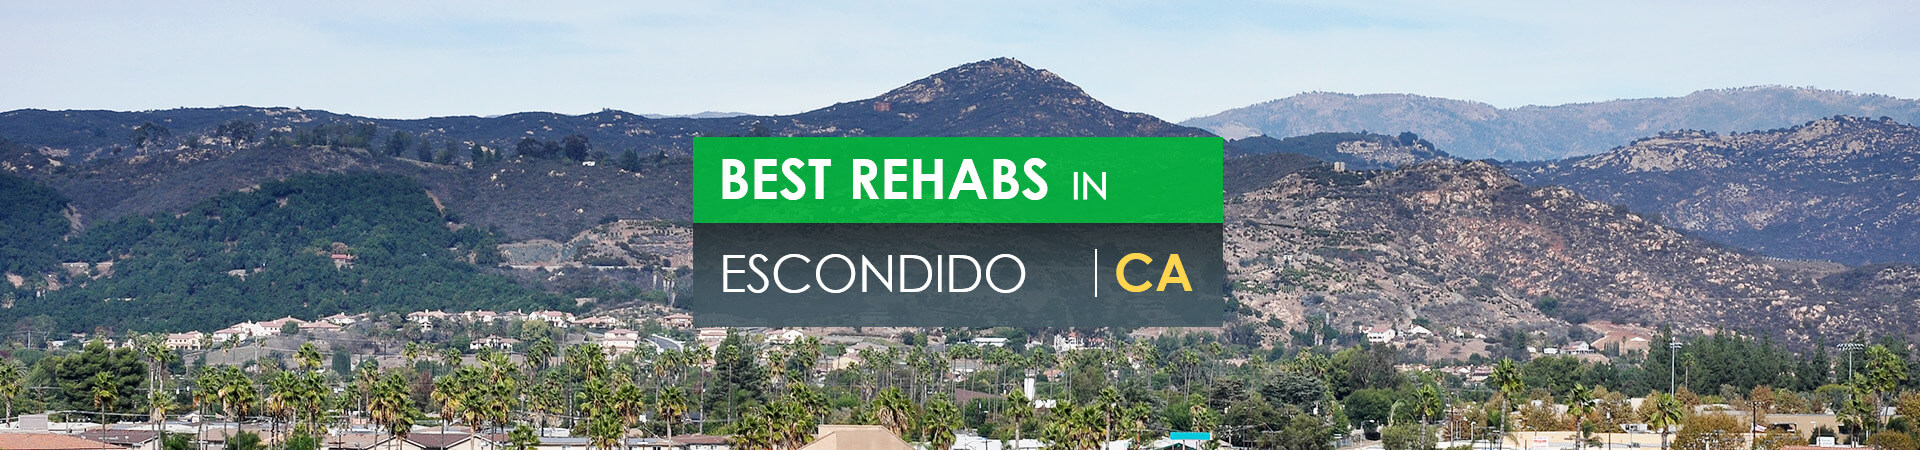 Best rehabs in Escondido, CA